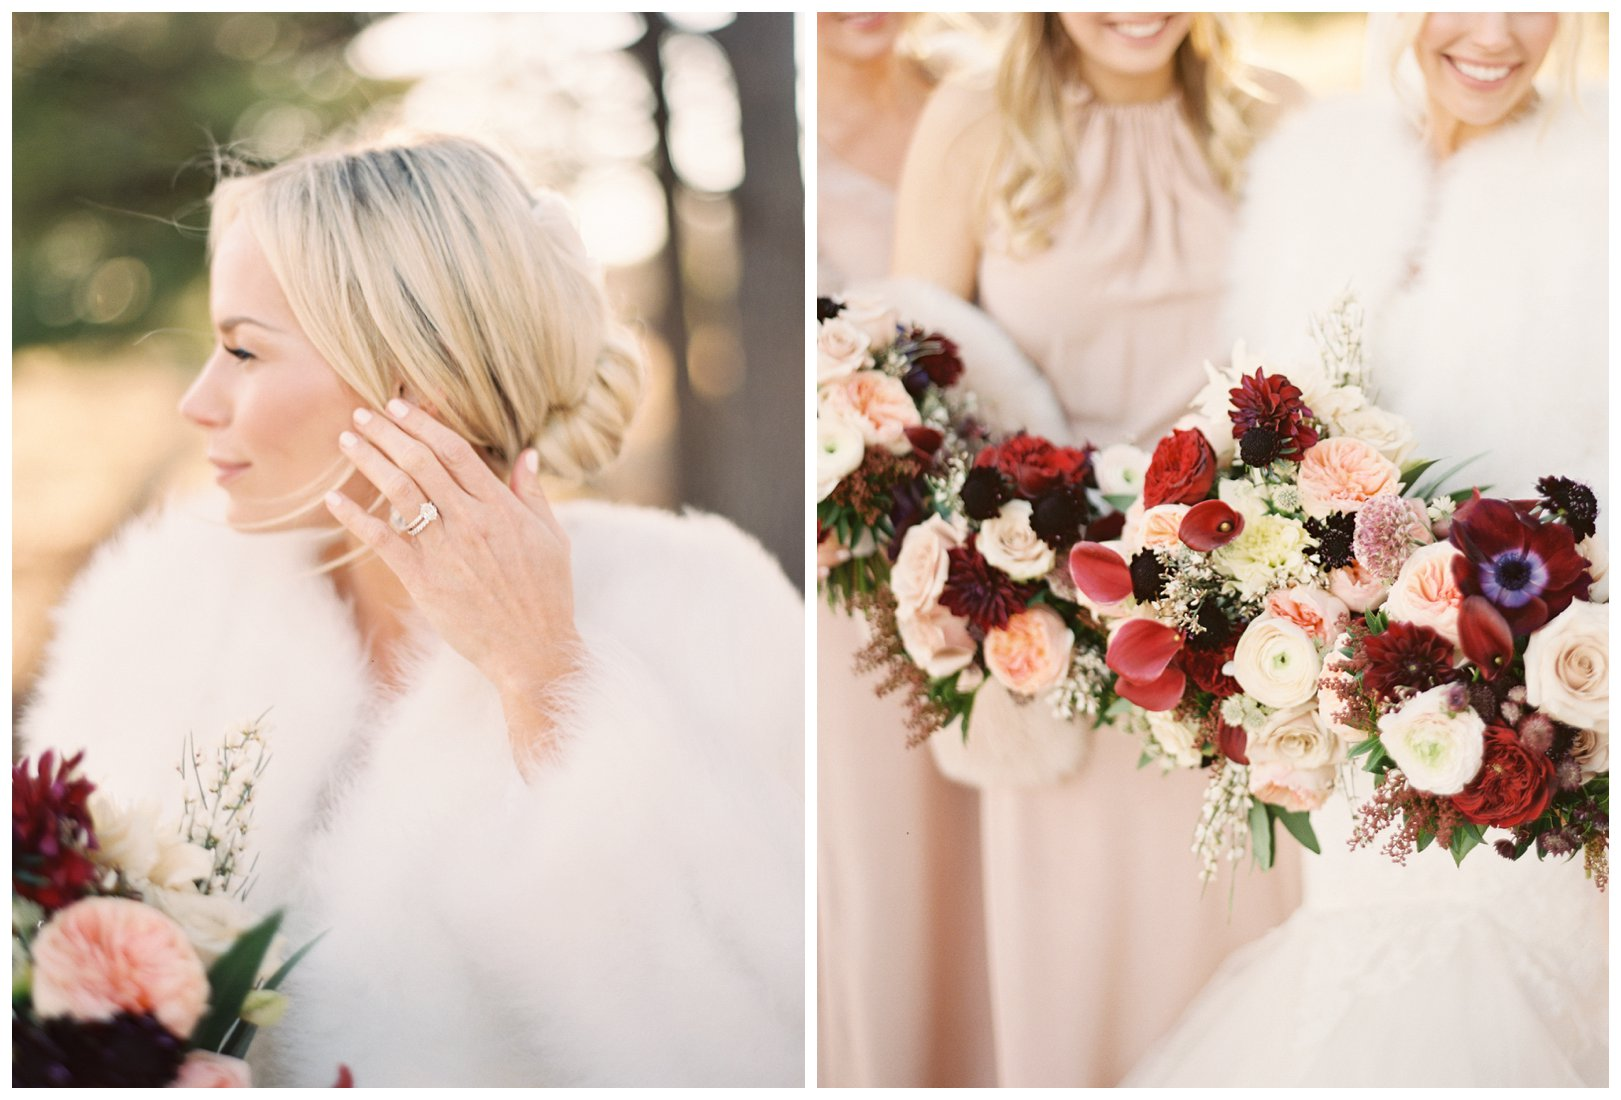 lauren muckler photography_fine art film wedding photography_st louis_photography_1361.jpg